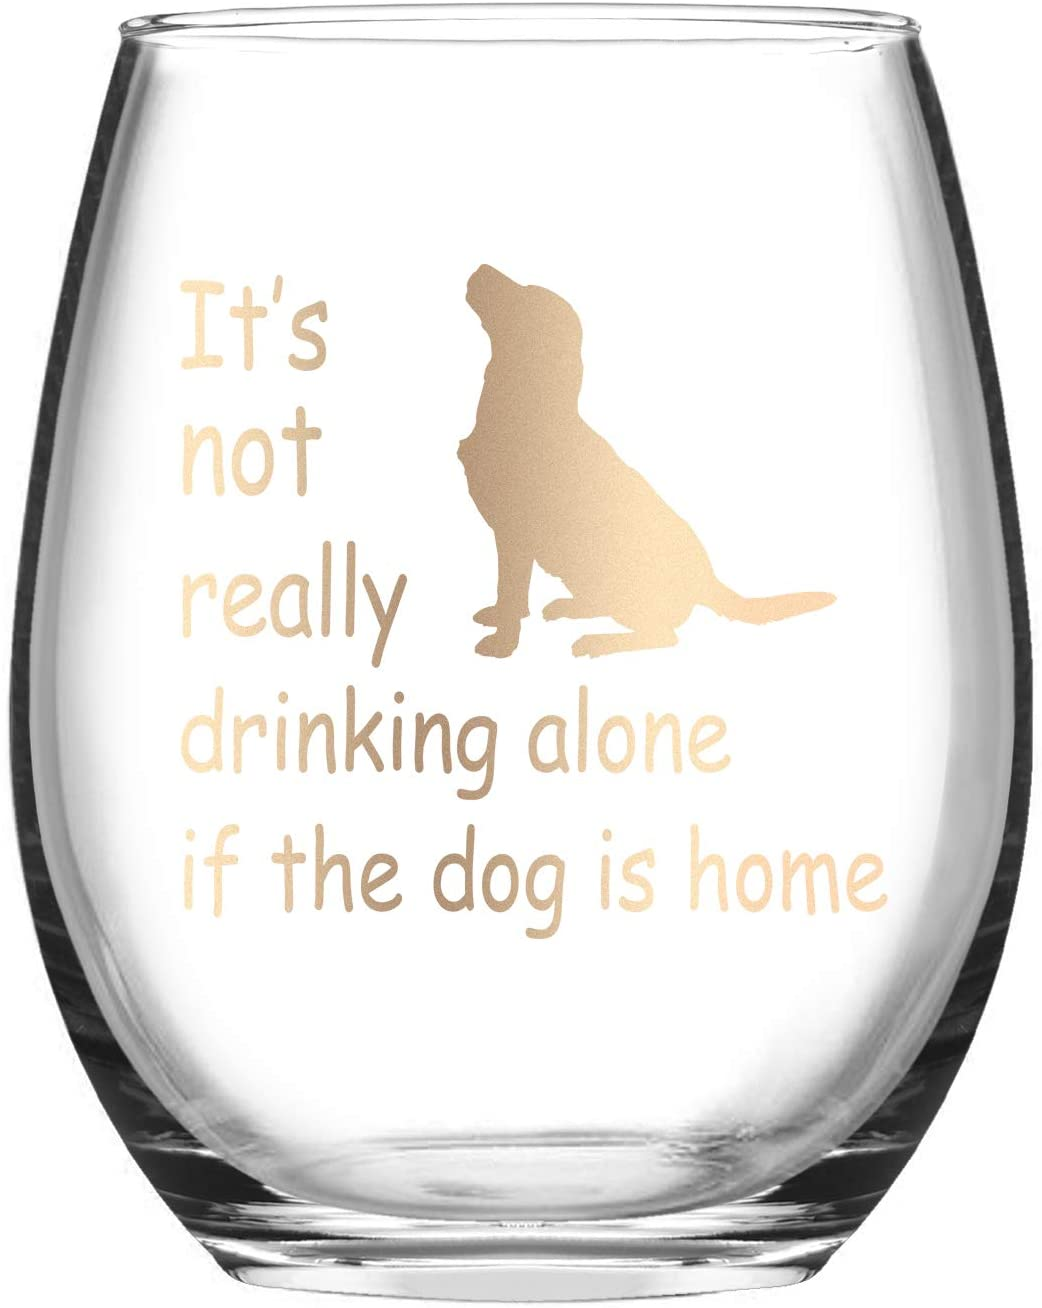 Dog Lover Gifts for Women Stemless Wine Glass, Its Not Really Drinking Alone if the Dog is Home Wine Glass Funny Birthday Gift for Dog Mom Dog Owner Friends Mother Daughter, 15 Oz